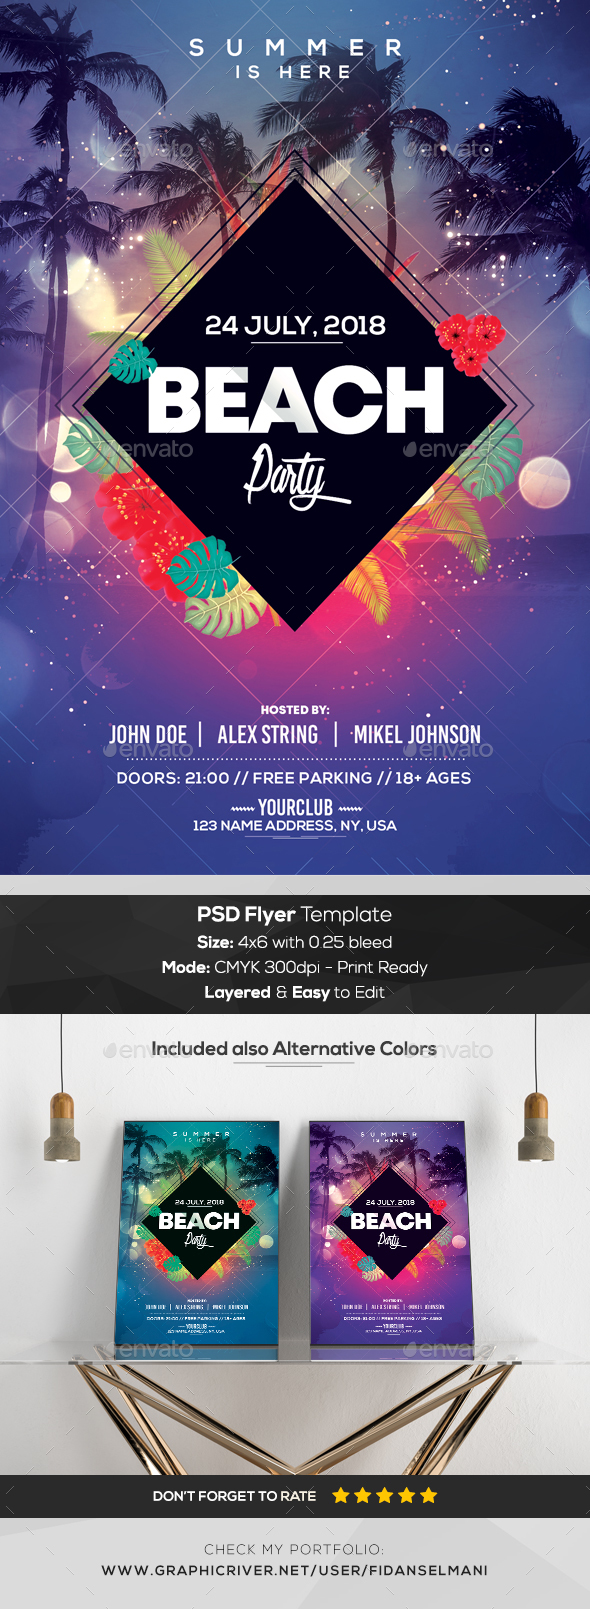 Beach Party - Geometric PSD Flyer Template - Events Flyers